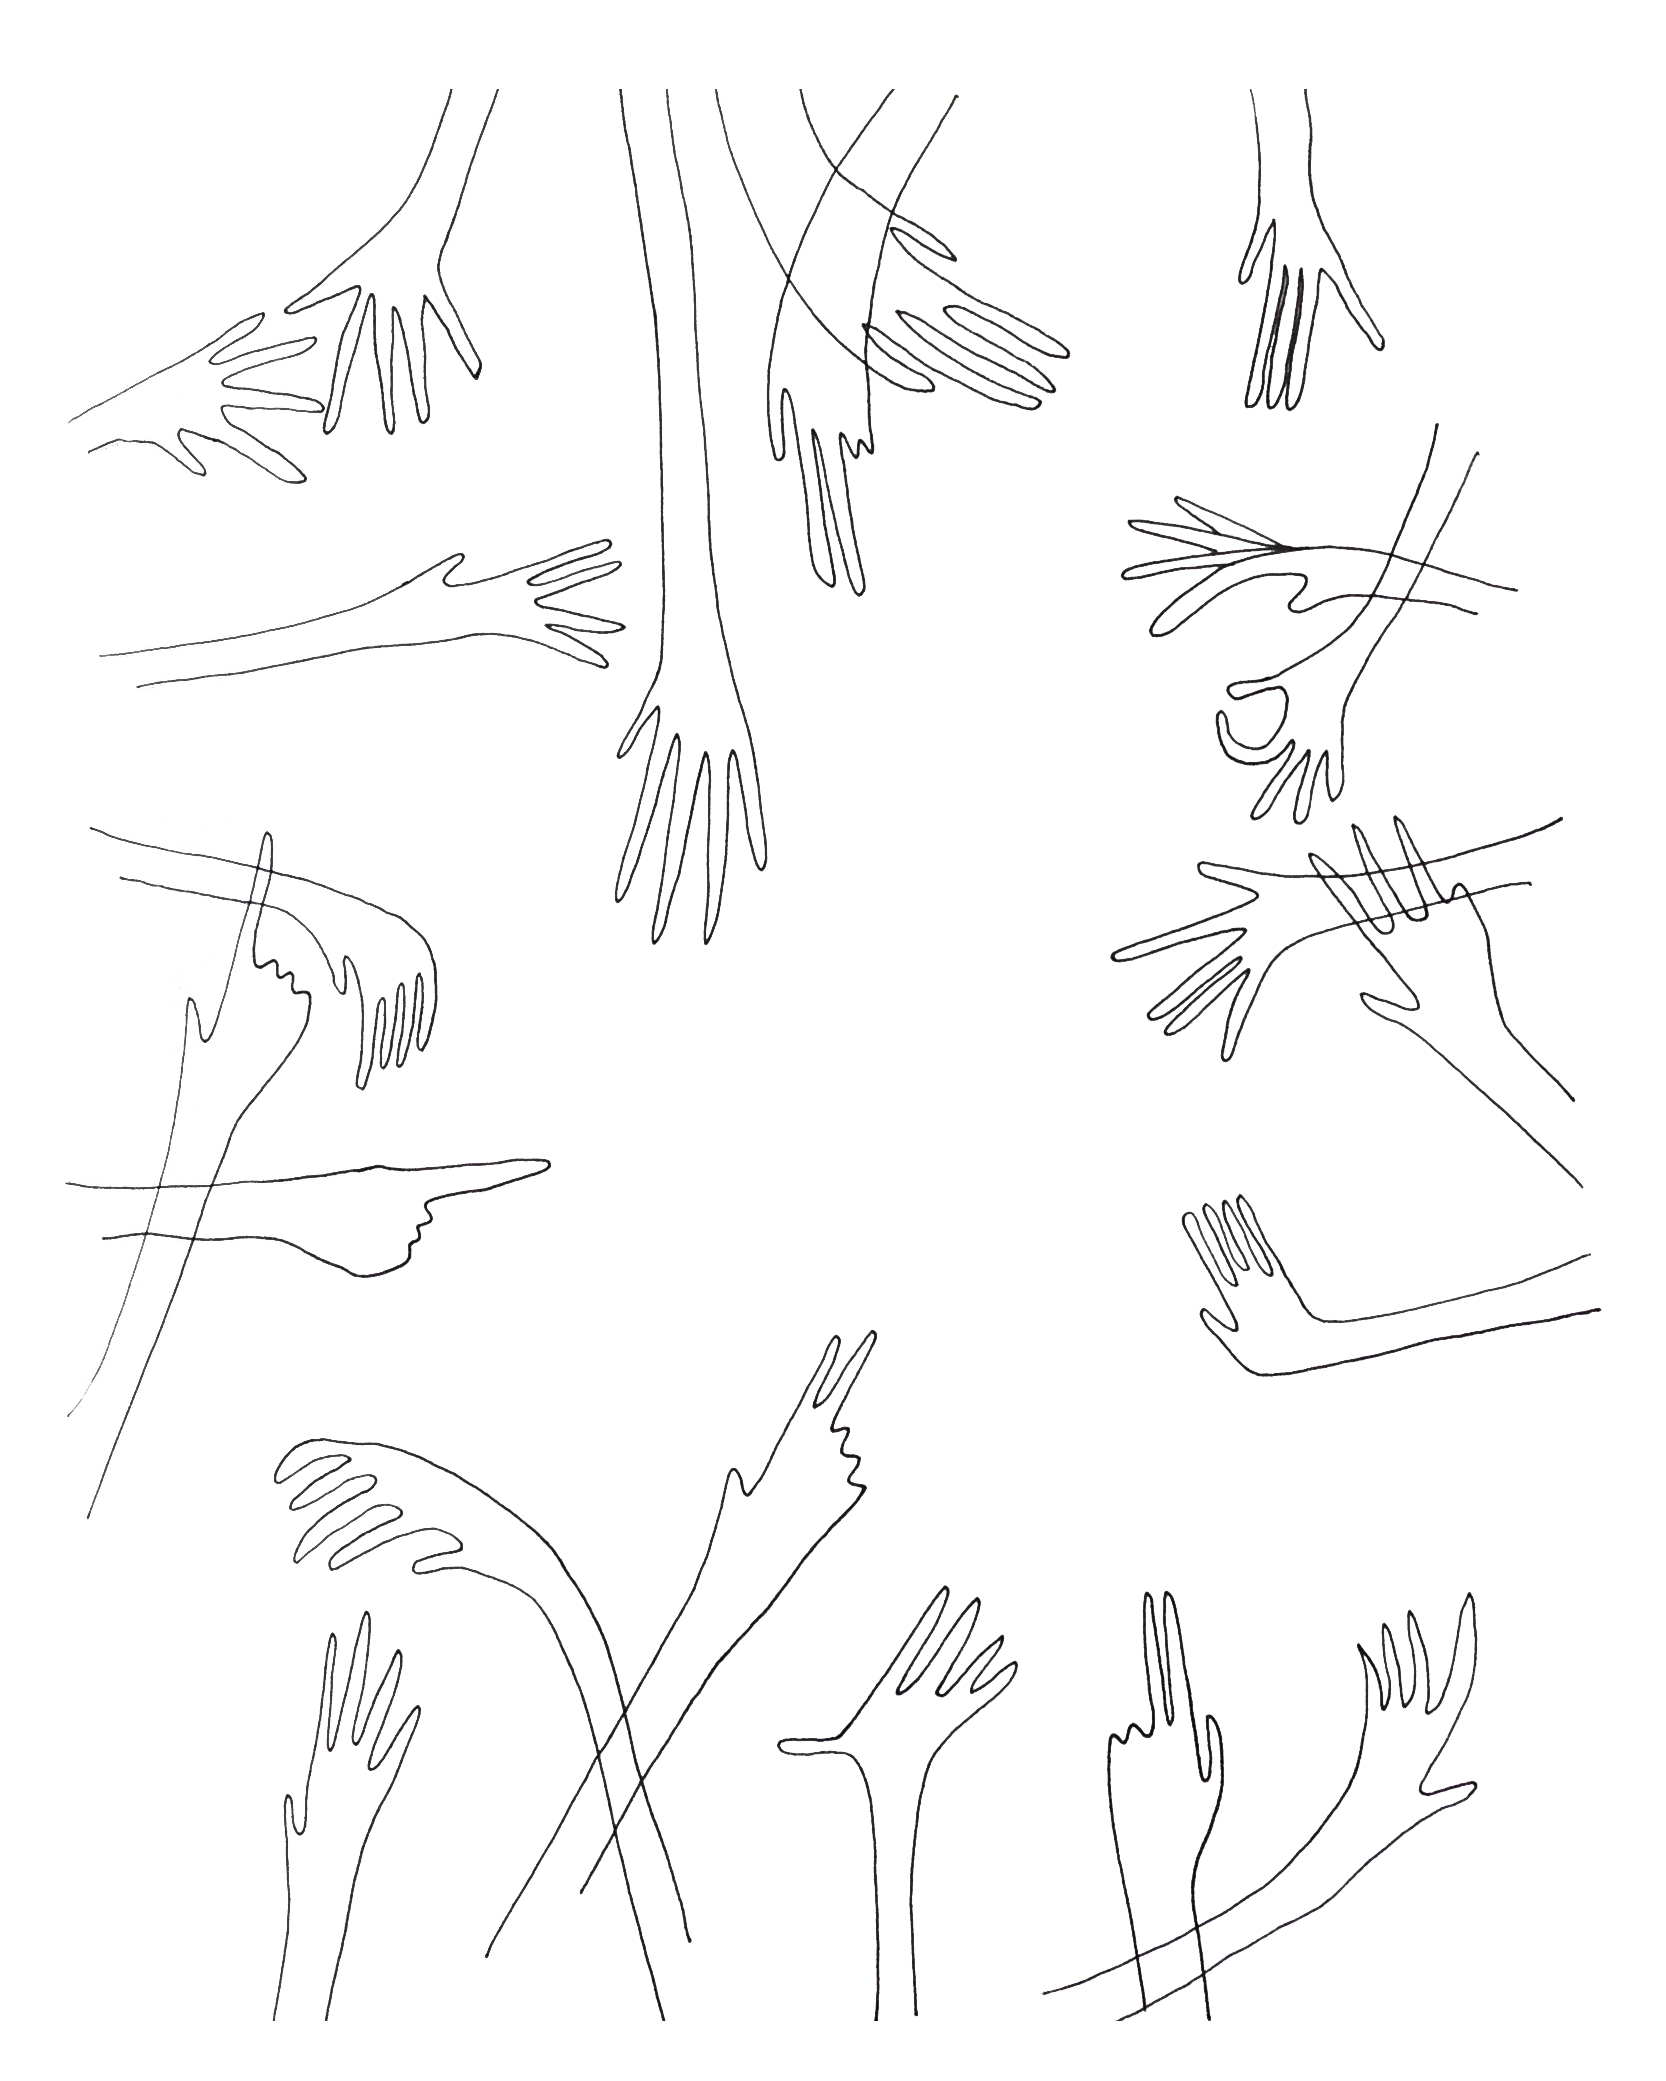 Hands, drawing by Iris Lacoudre